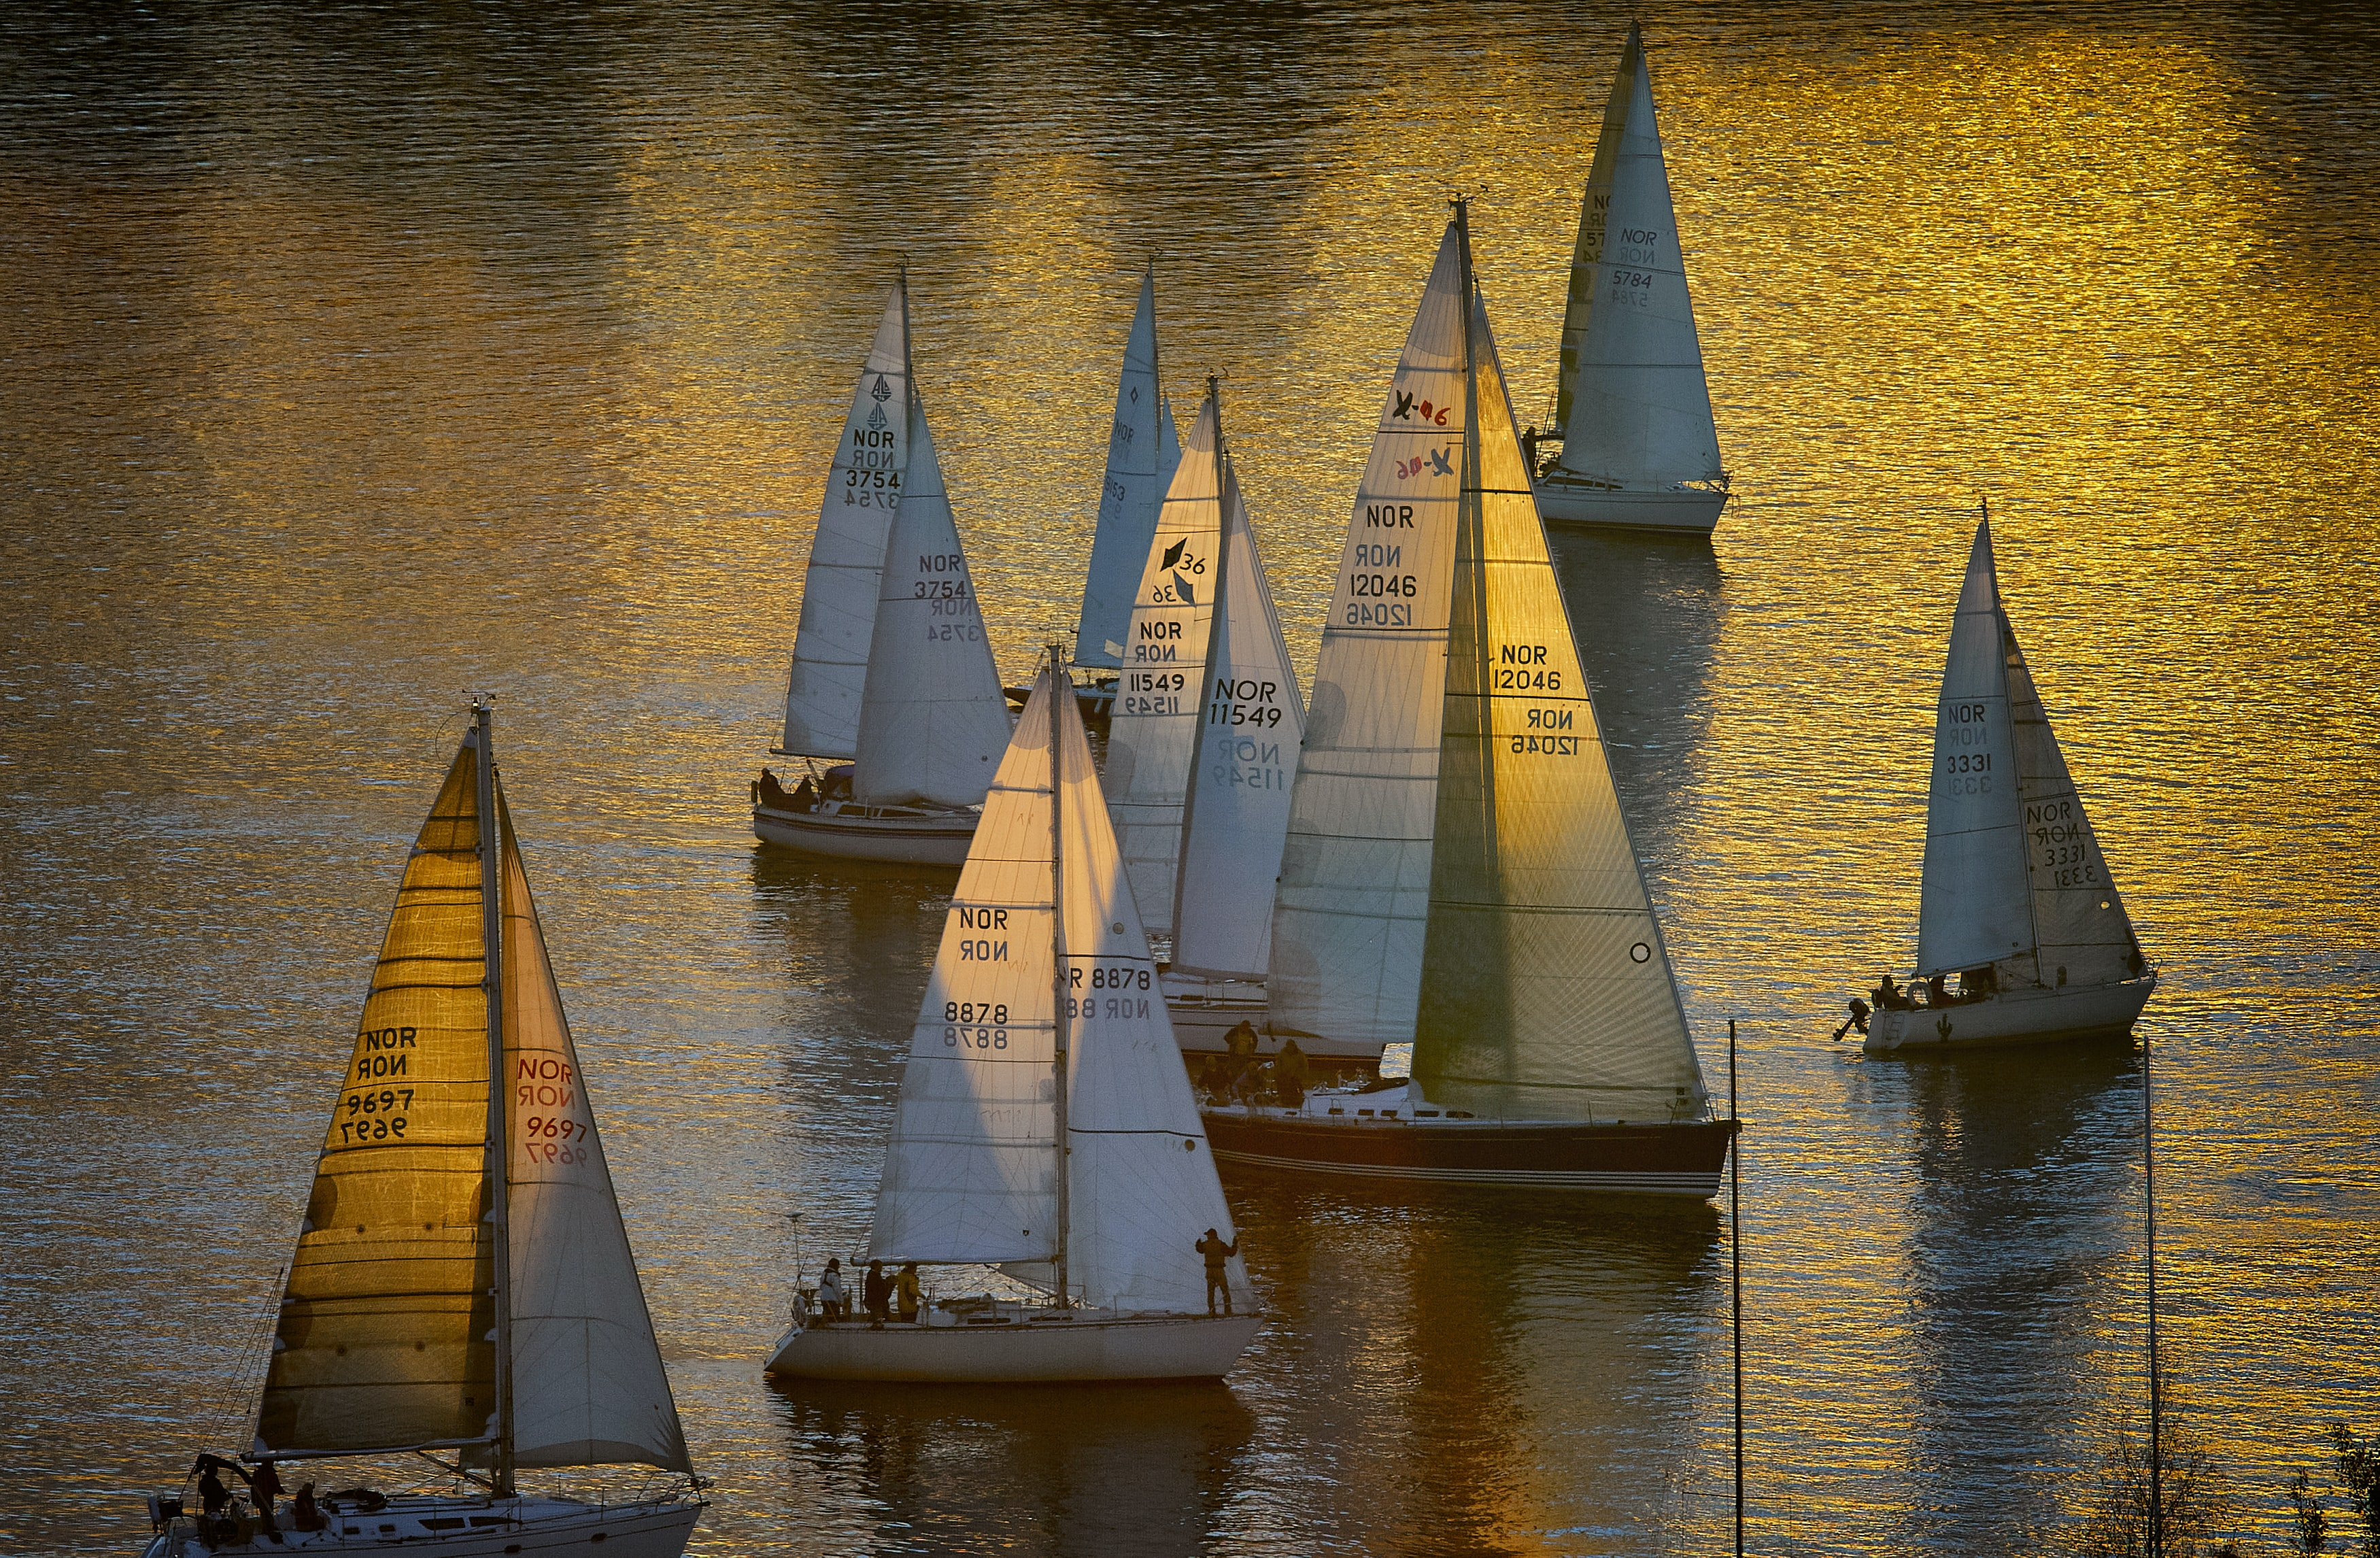 white sailboats on body of water during daytime